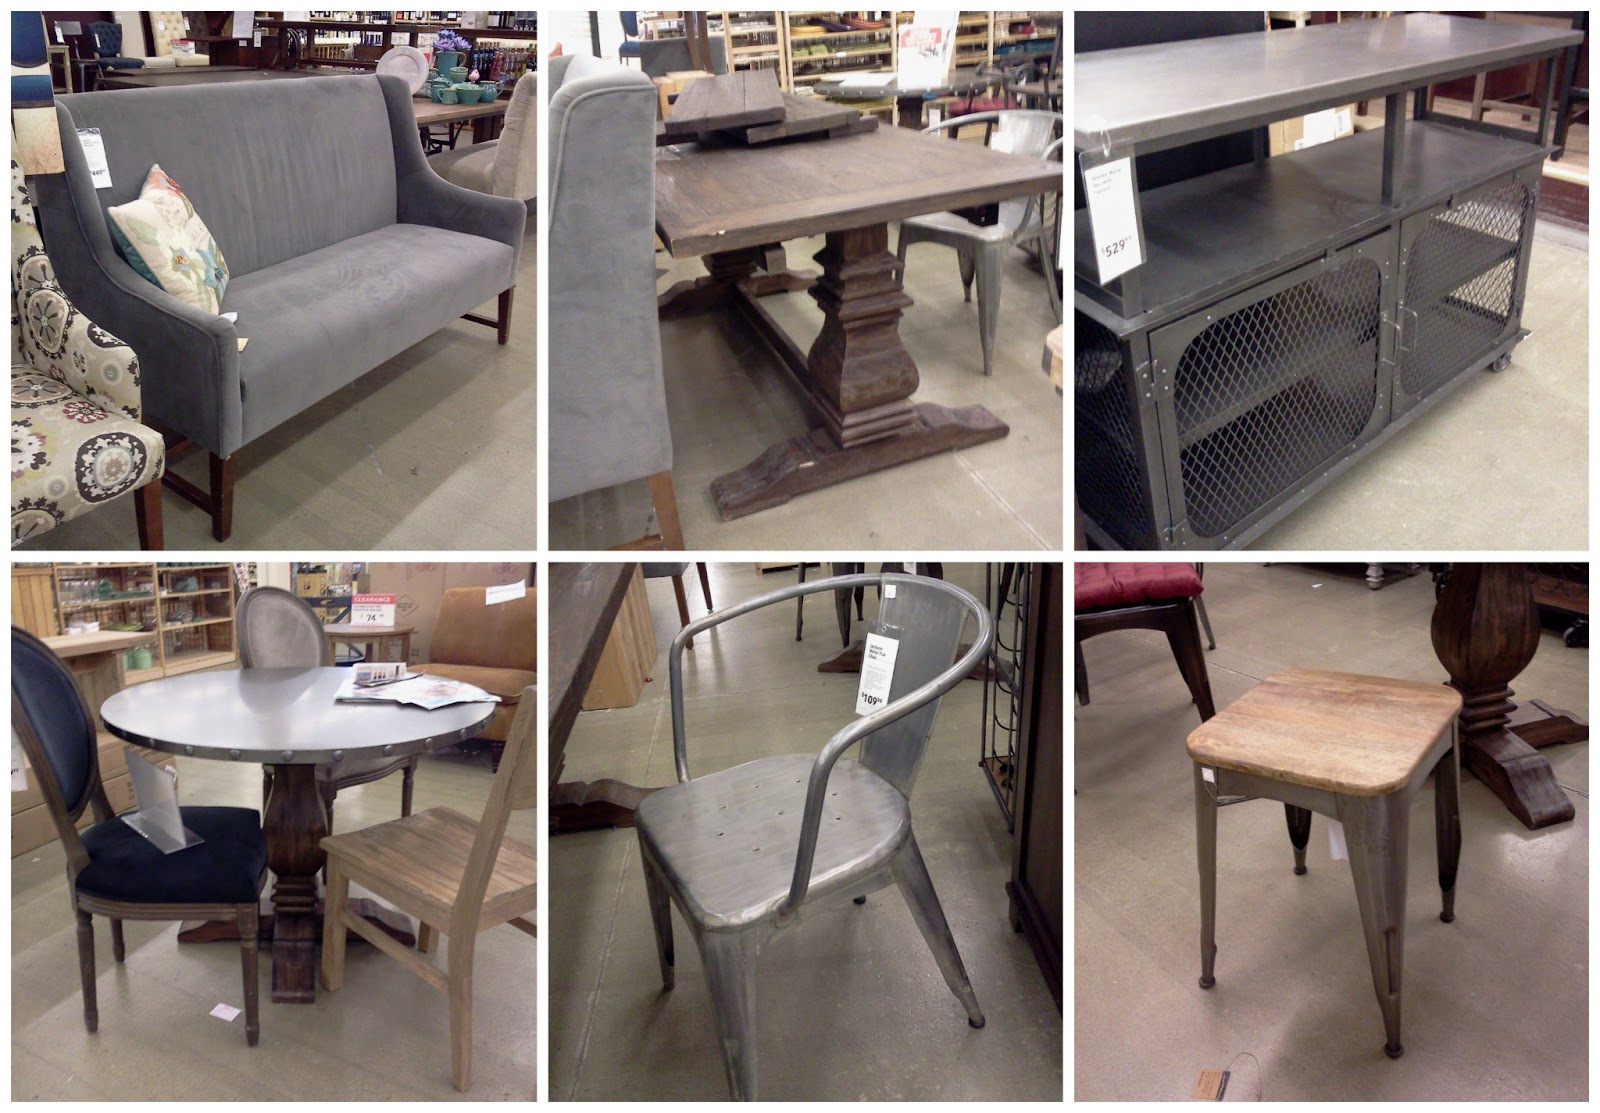 Beauty 4 Ashes: Cost Plus | World Market - Farm Style Table With Storage Bench